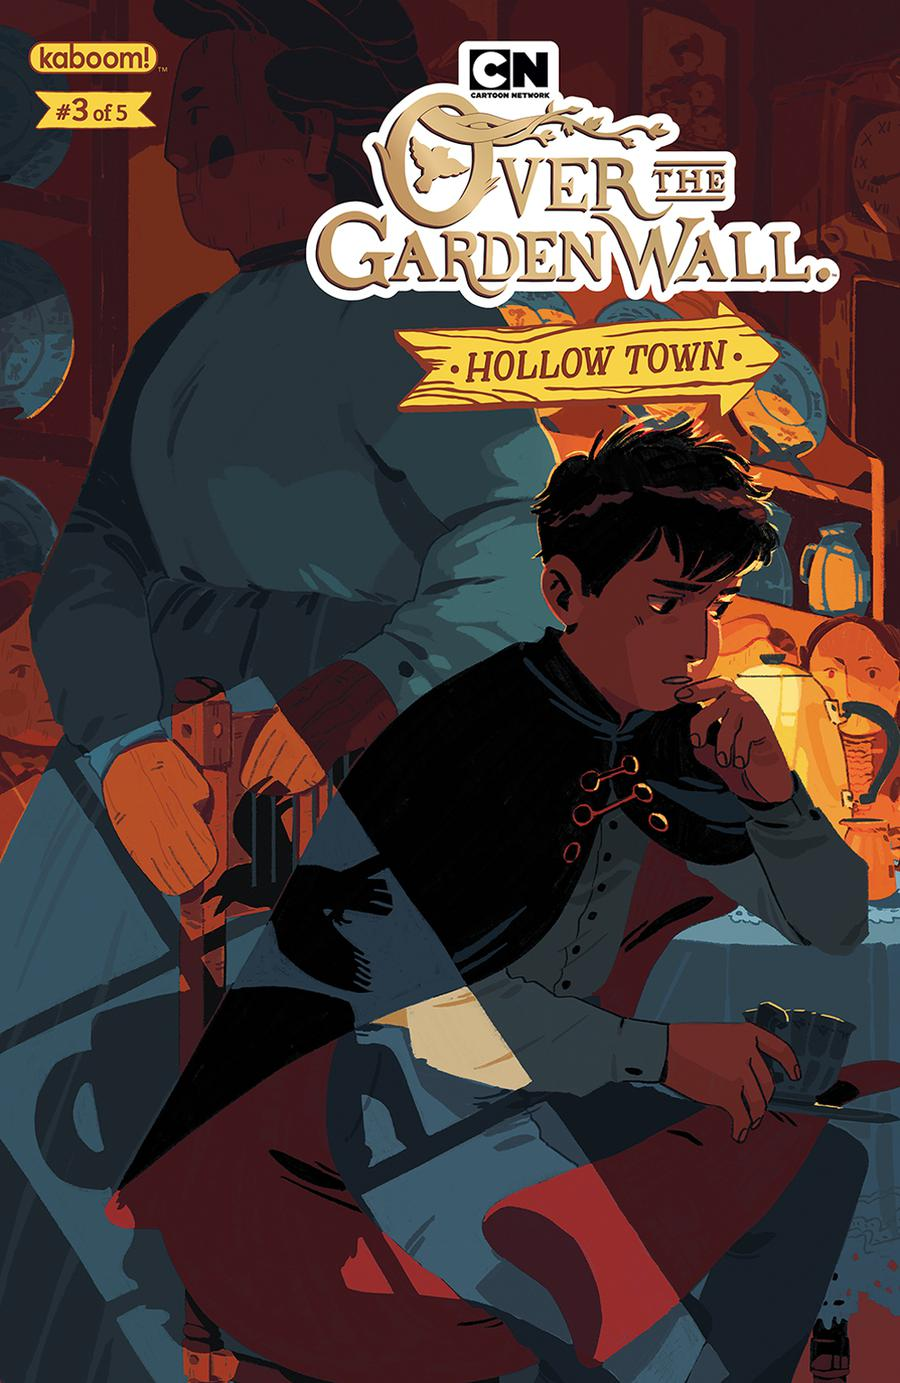 Over The Garden Wall Hollow Town #3 Cover A Regular Celia Lowenthal Cover